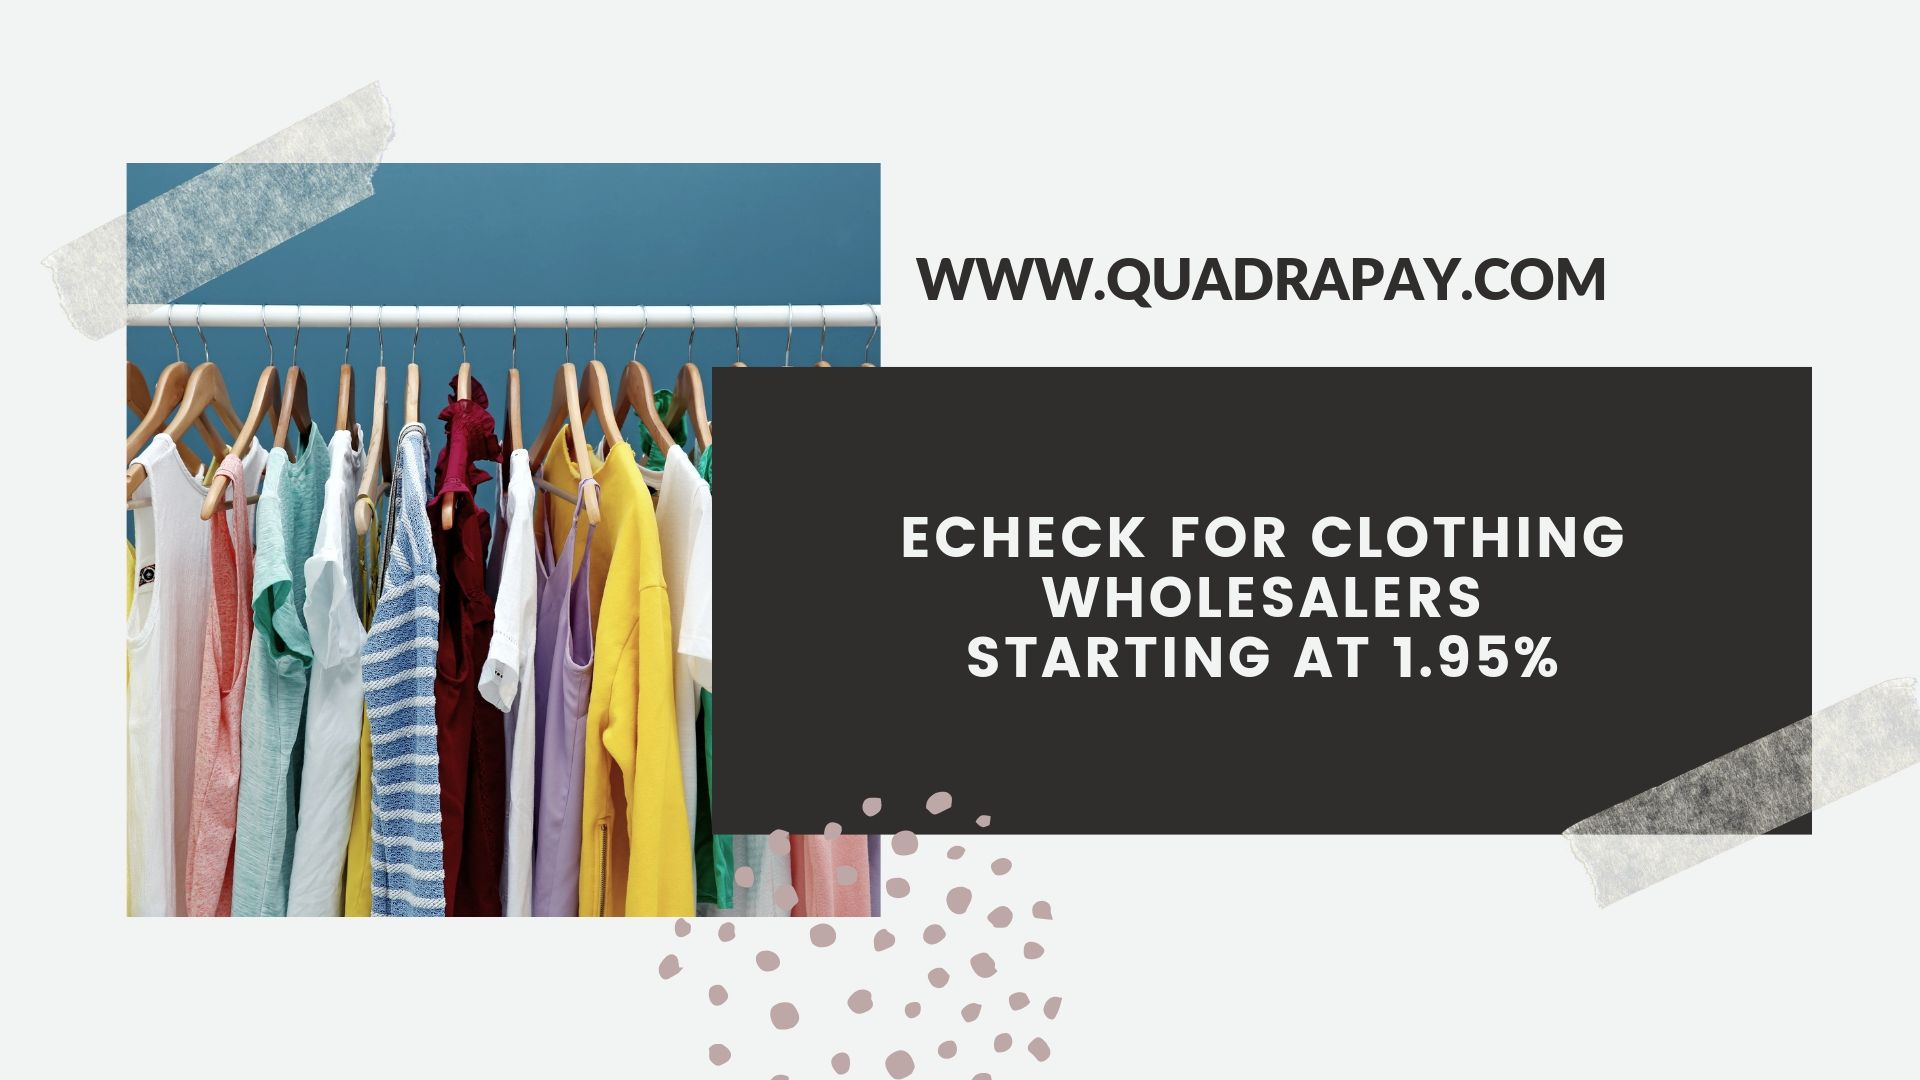 ECHECK FOR CLOTHING WHOLESALERS BY QUADRAPAY